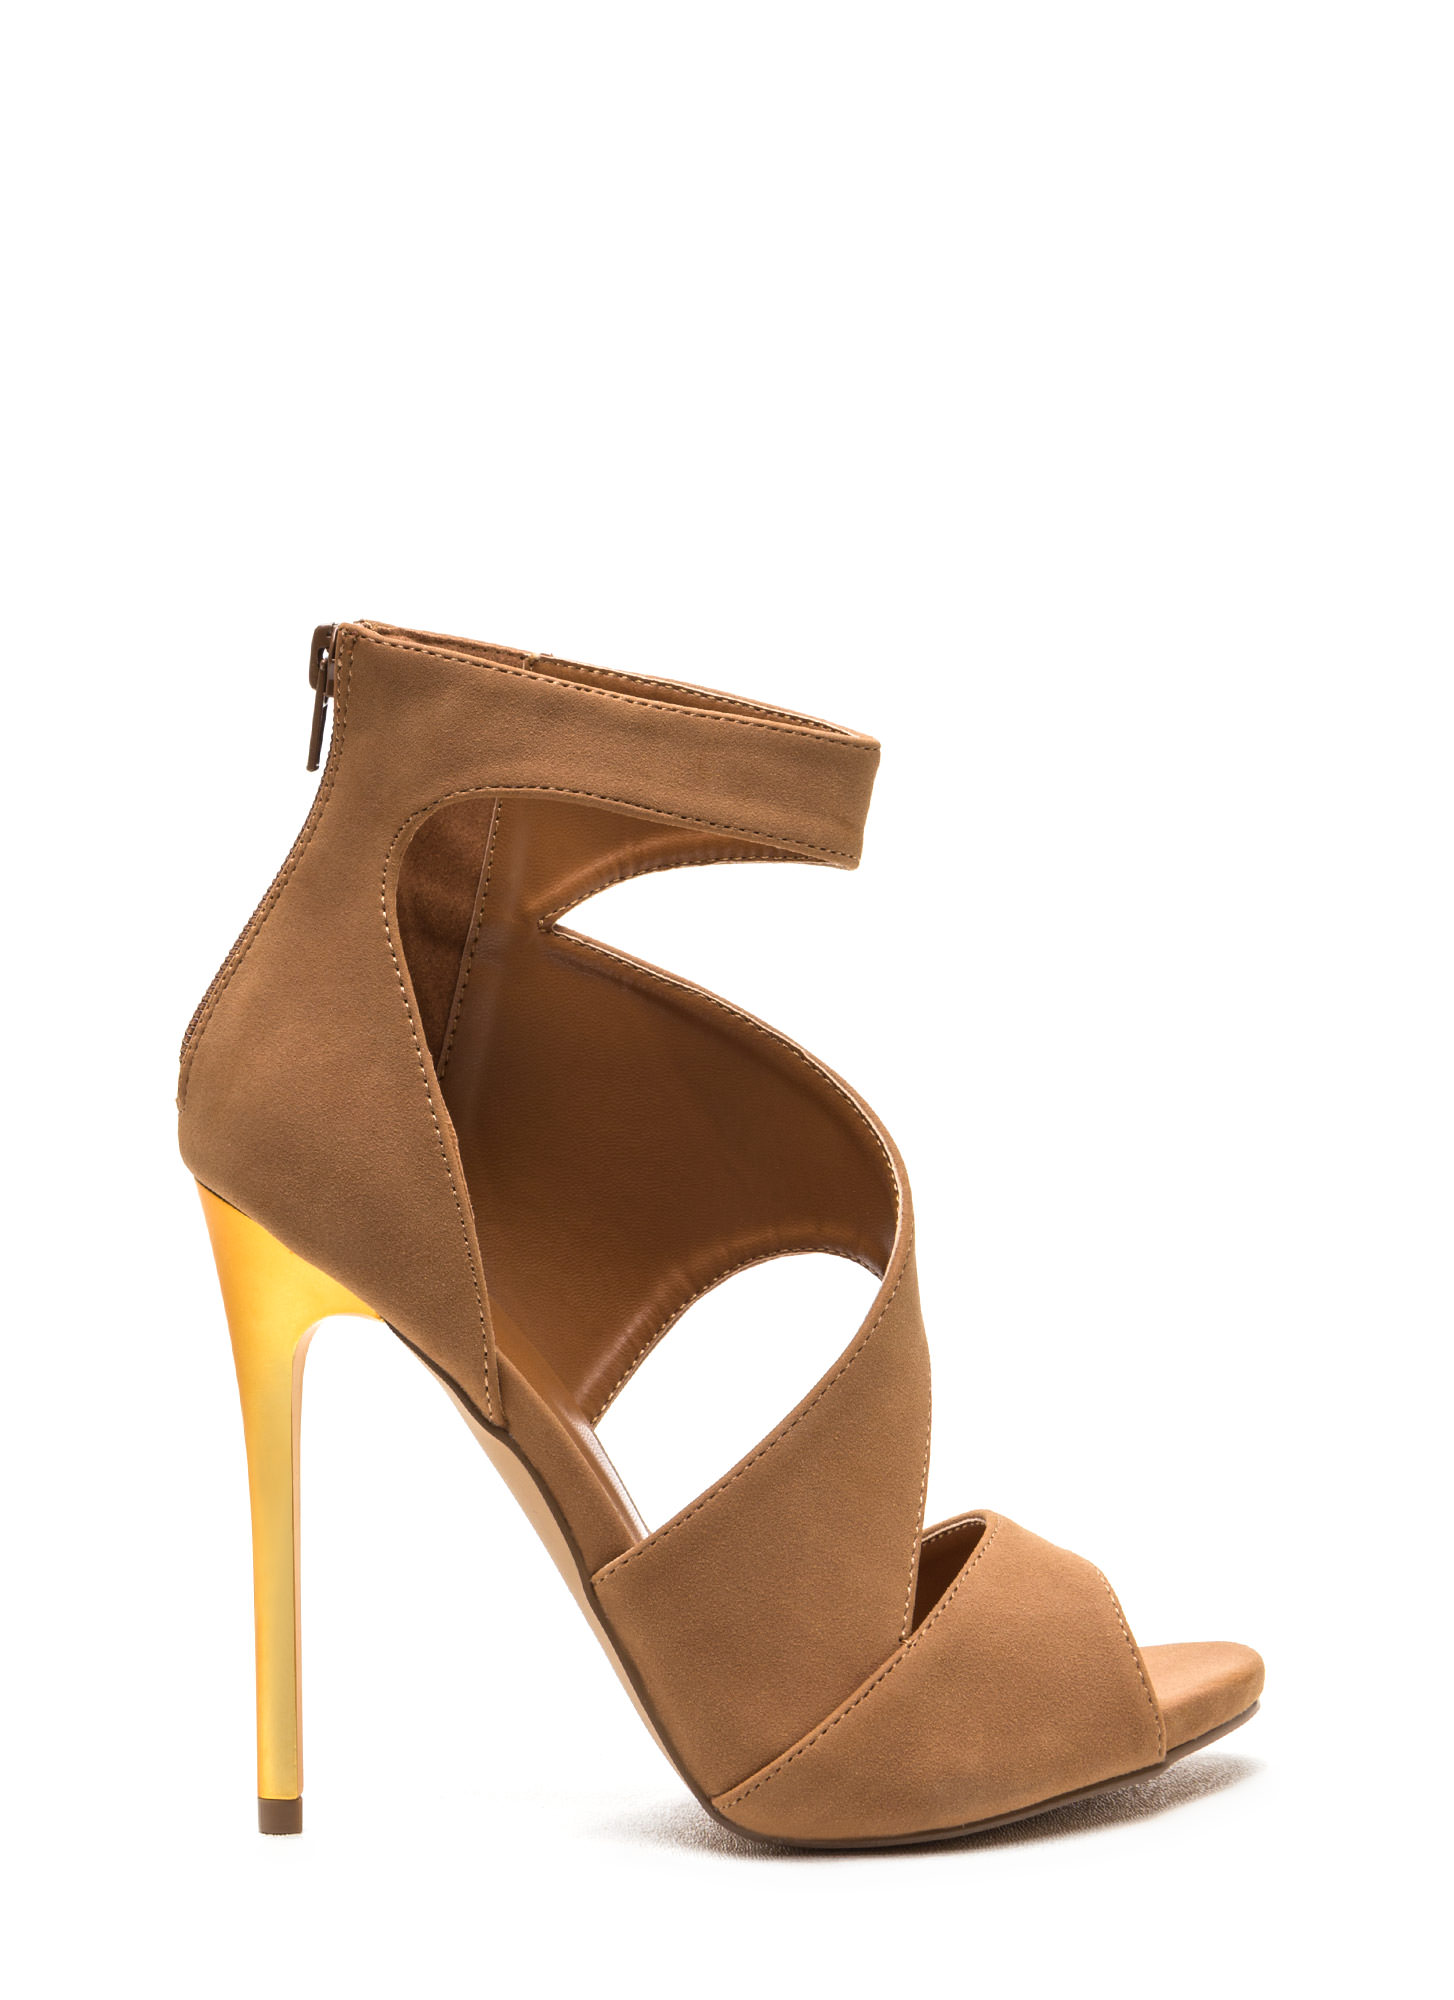 Sneak A Peek Cut-Out Faux Suede Heels MOCHA